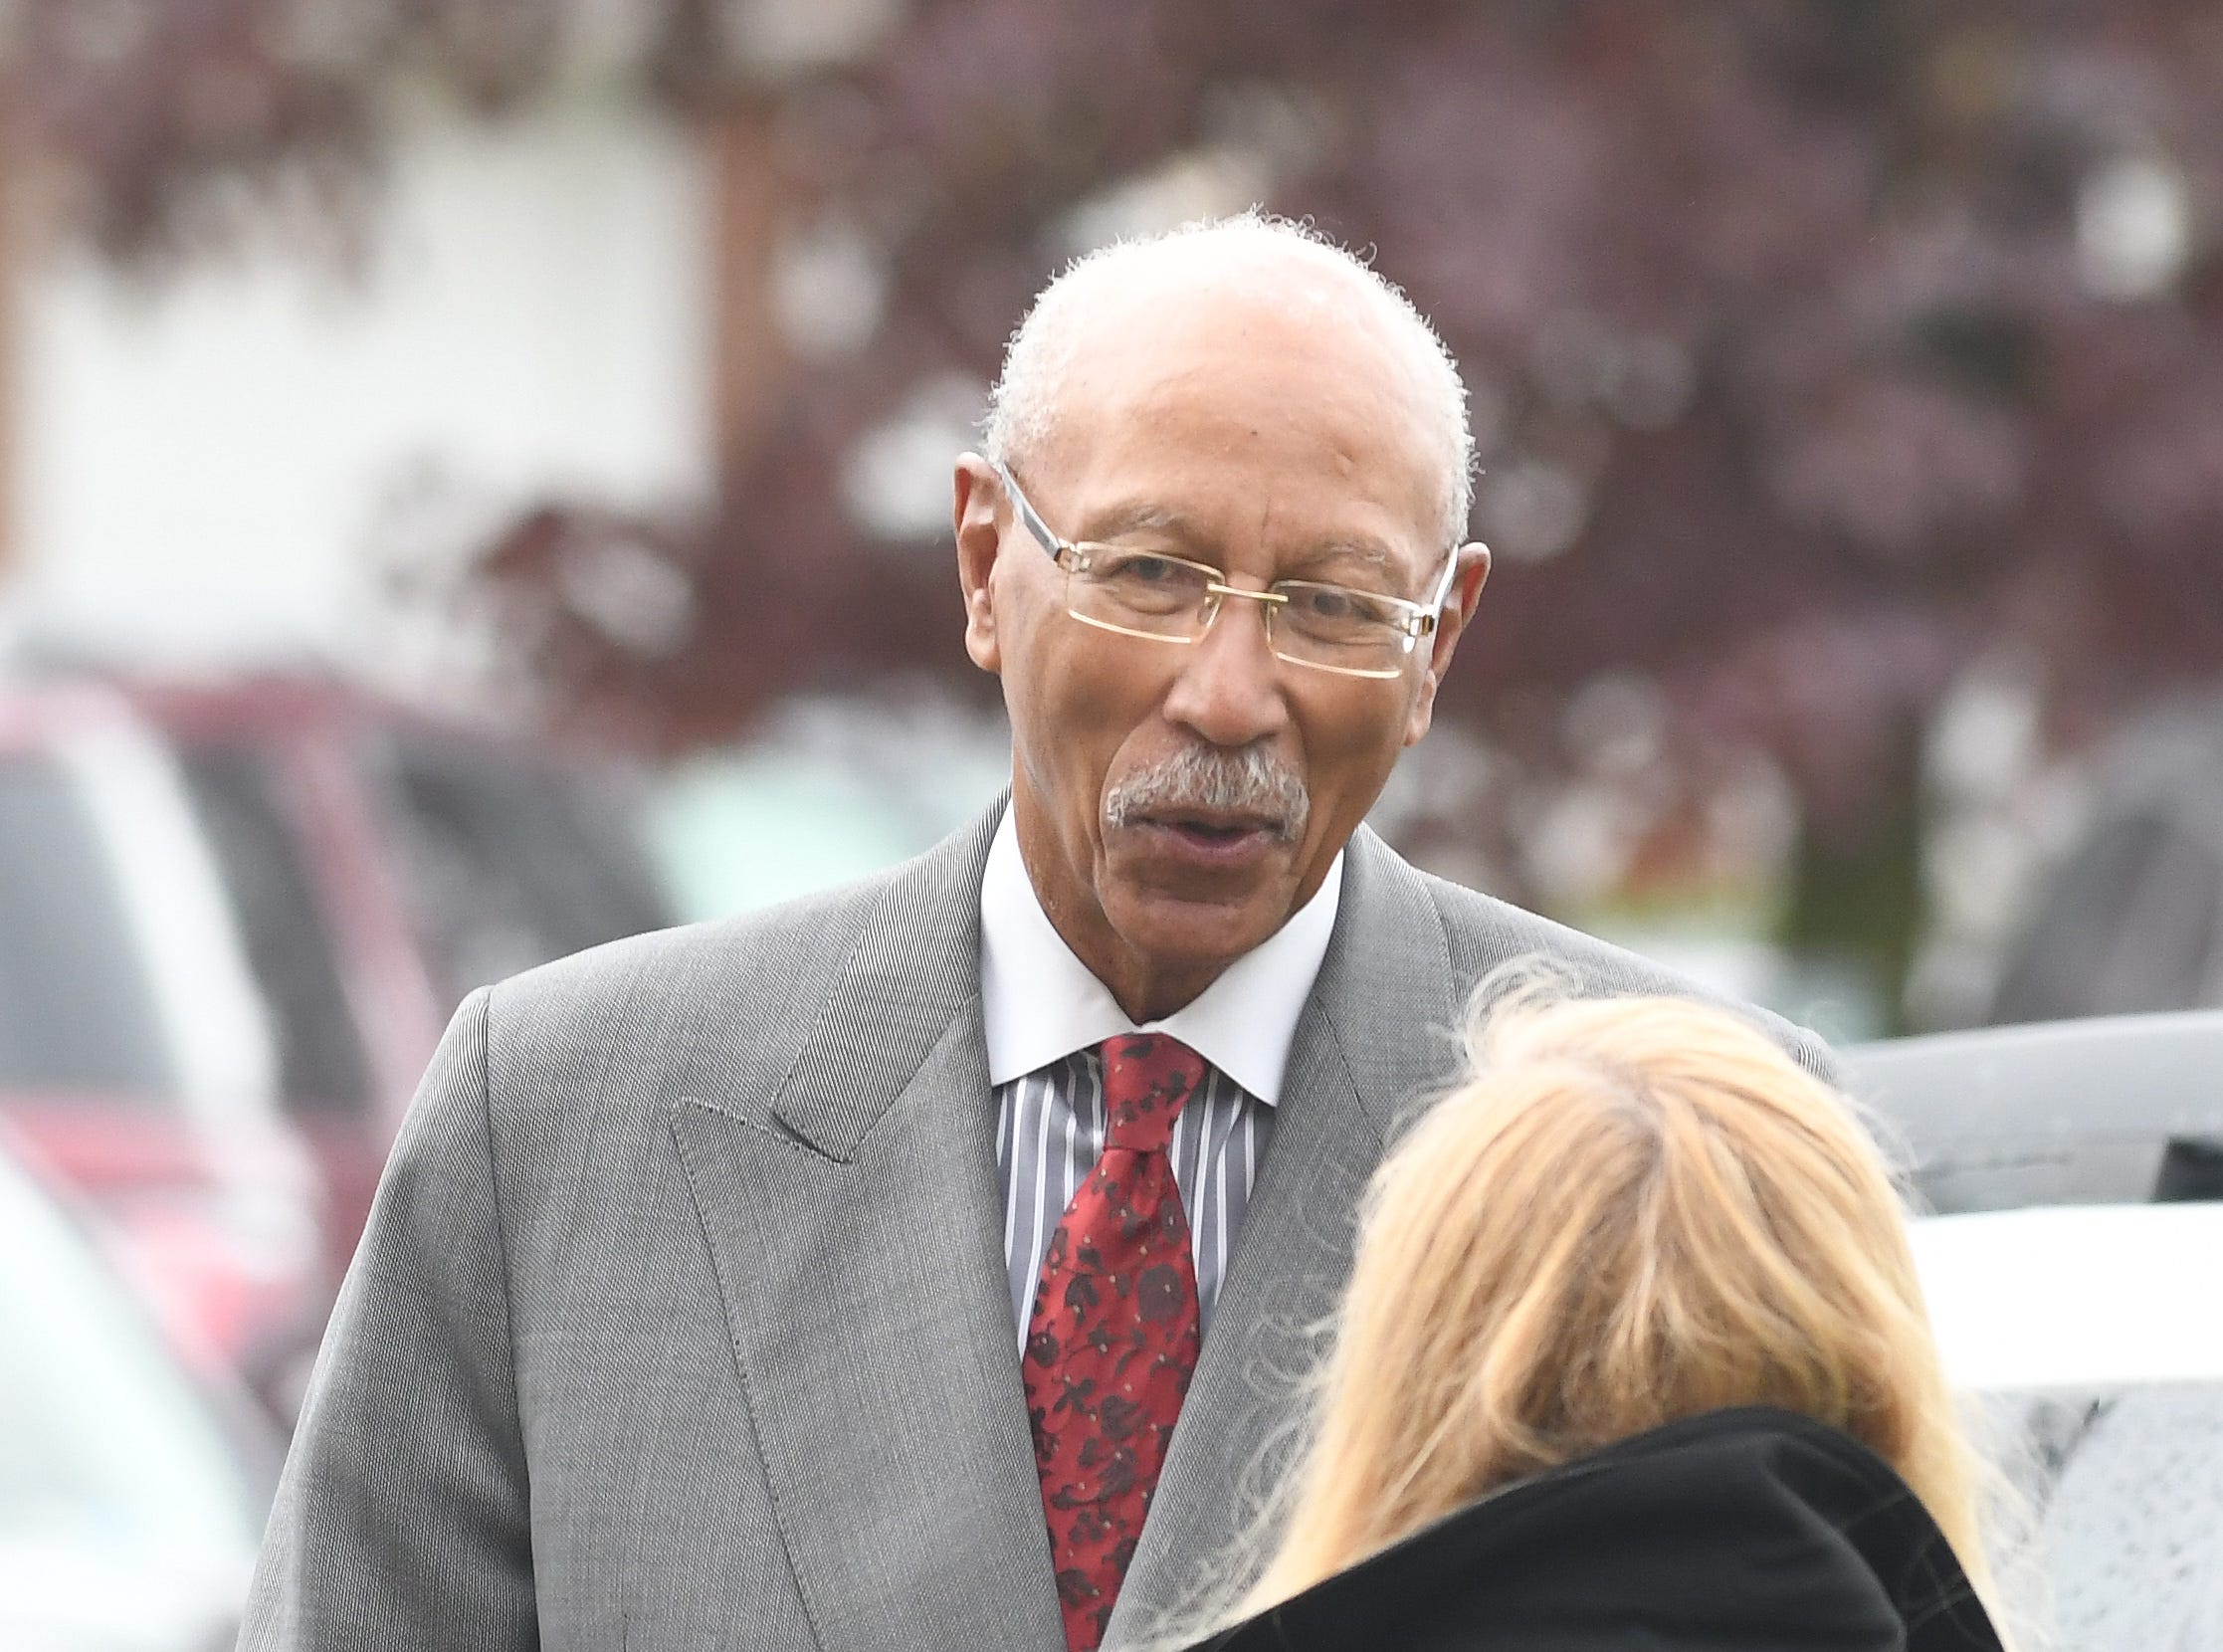 Former Detroit Mayor Dave Bing arrives for the funeral of Judge Damon Keith.